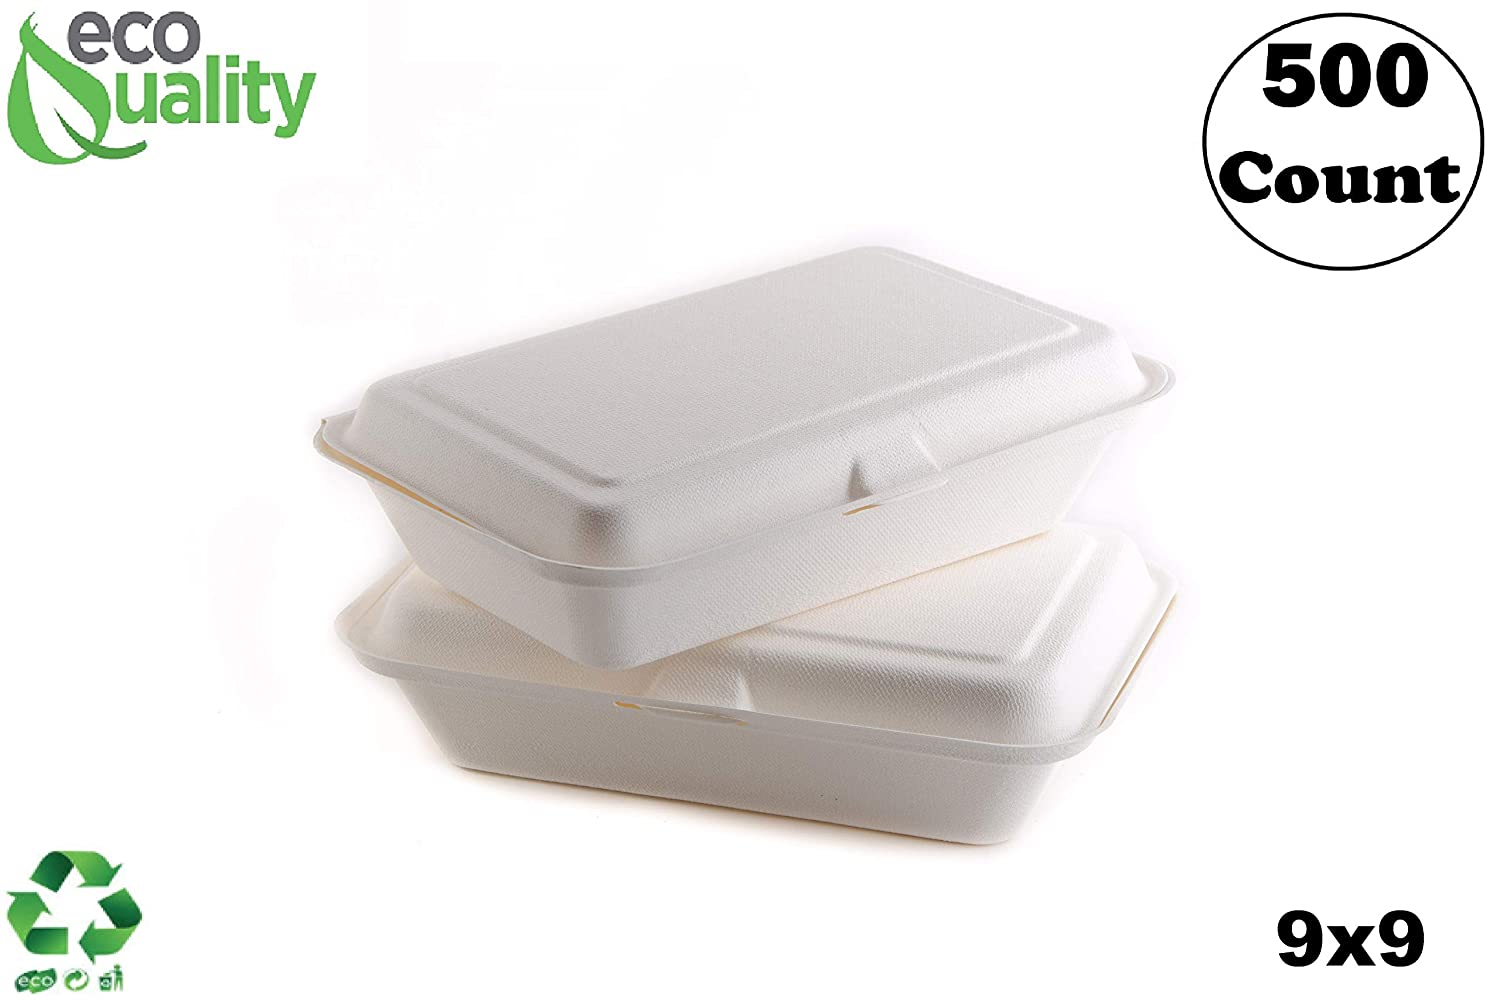 500 Count - Biodegradable 9x9 Take Out Food Containers with Clamshell Hinged Lid - Eco Friendly Sugarcane Bagasse 100% Compostable, Recyclable, Togo, Restaurant Carry Out, Party Take Home Boxes